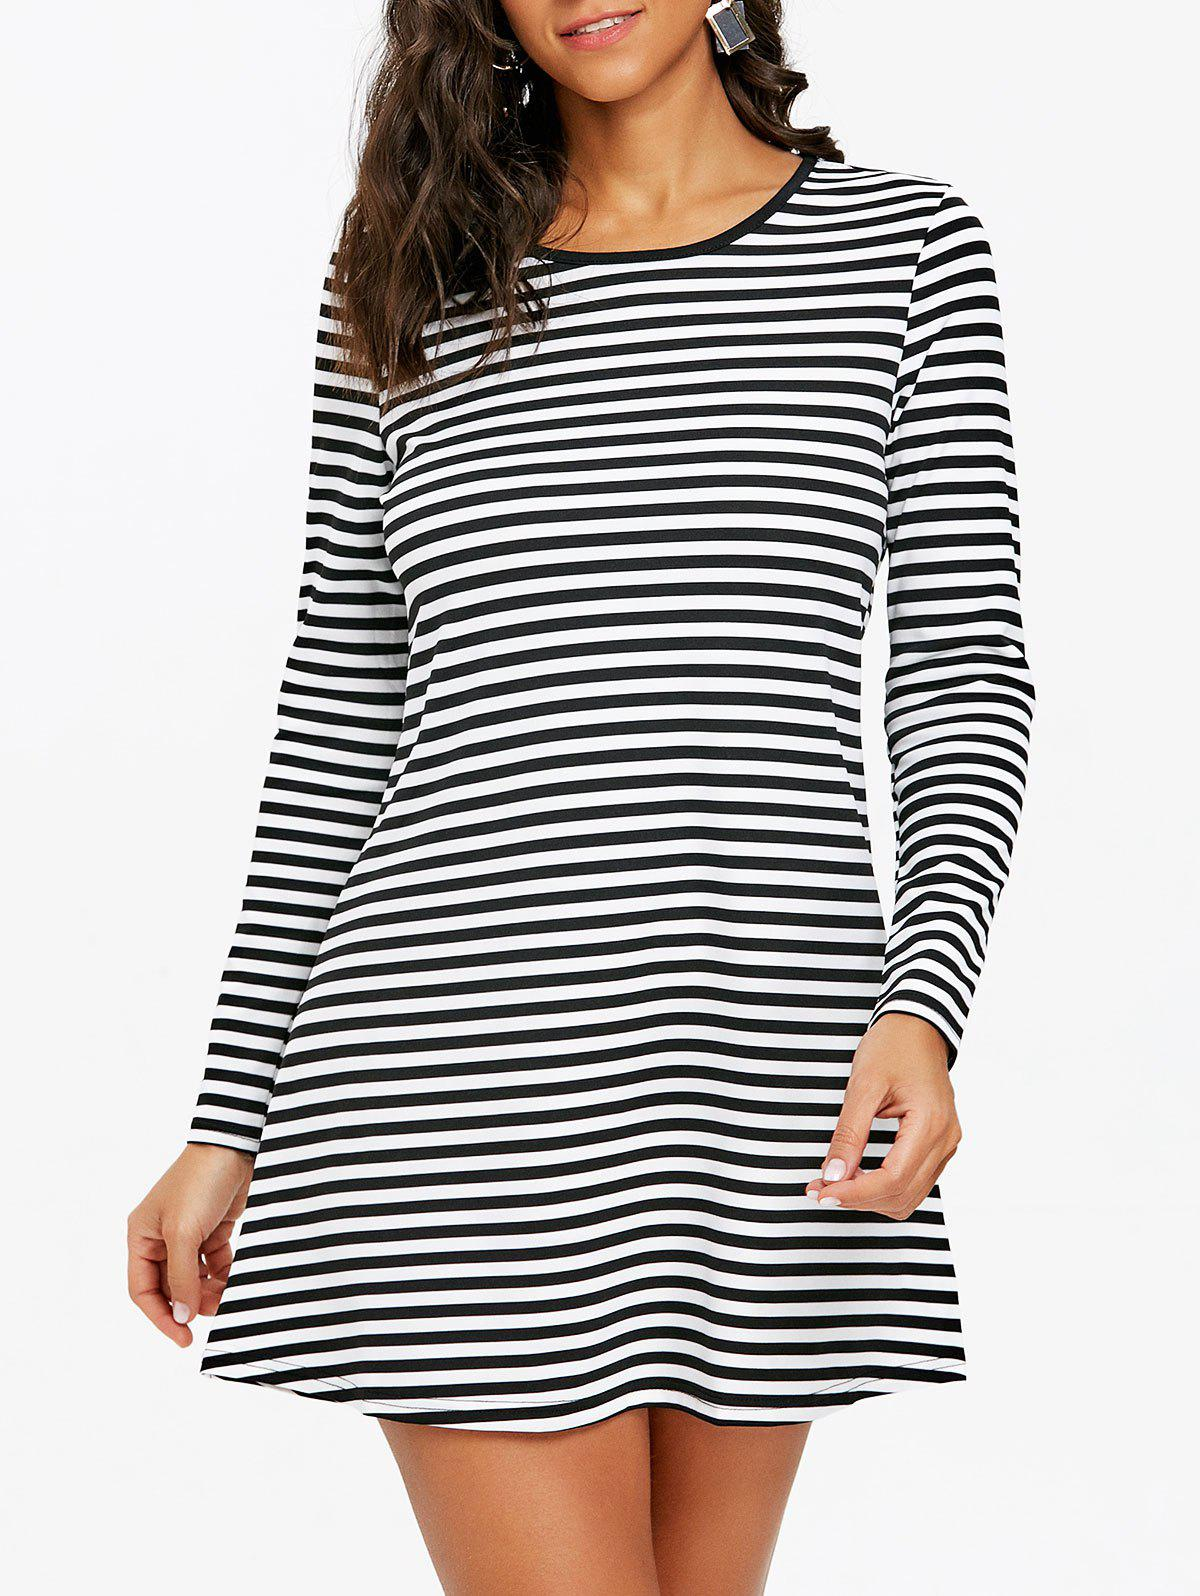 Striped Mini T-shirt Dress - BLACK WHITE XL